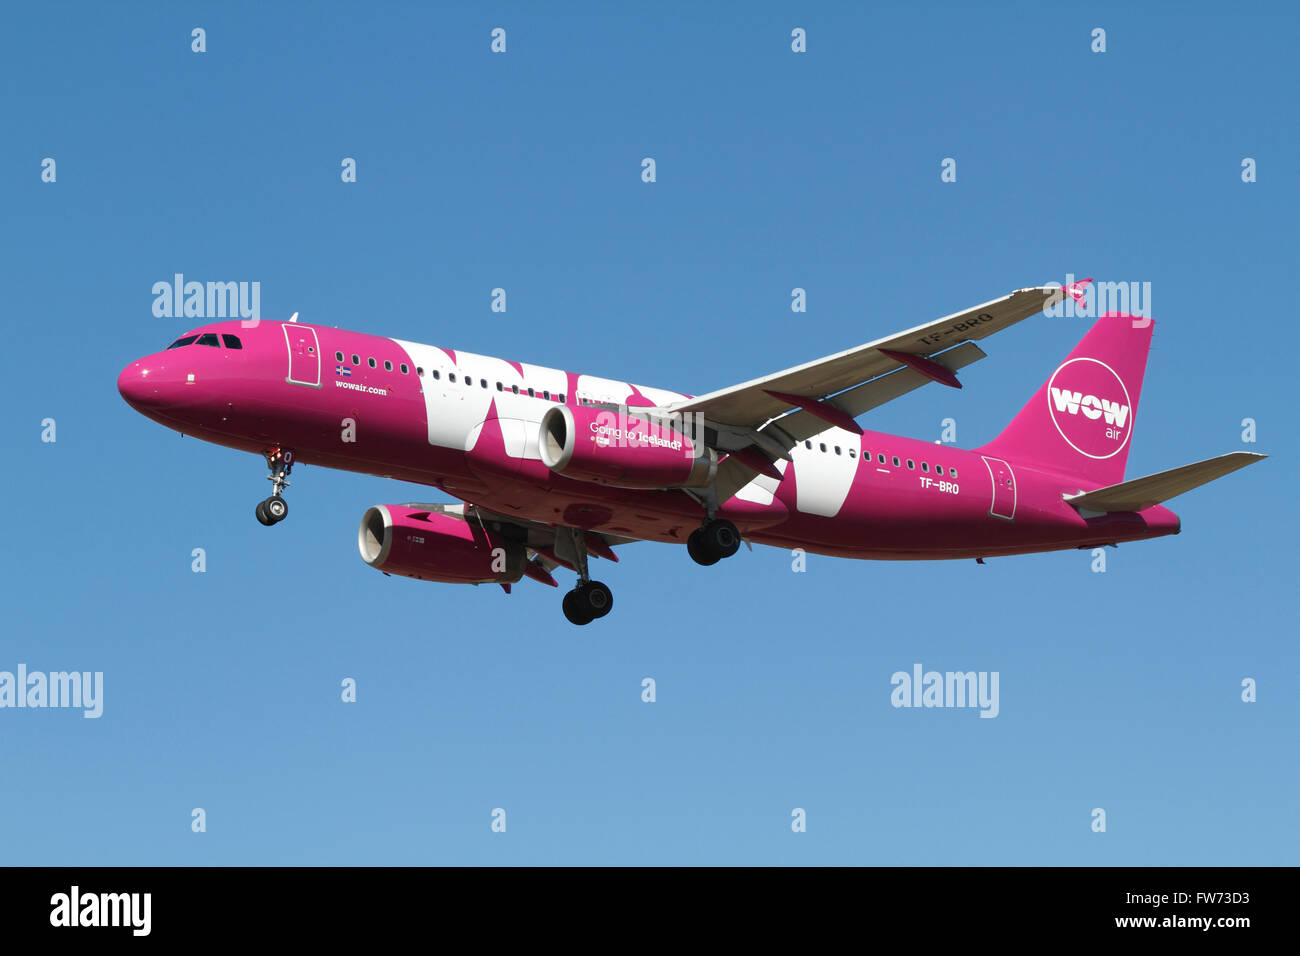 wow-air-airbus-a320-tf-bro-flight-ww902-